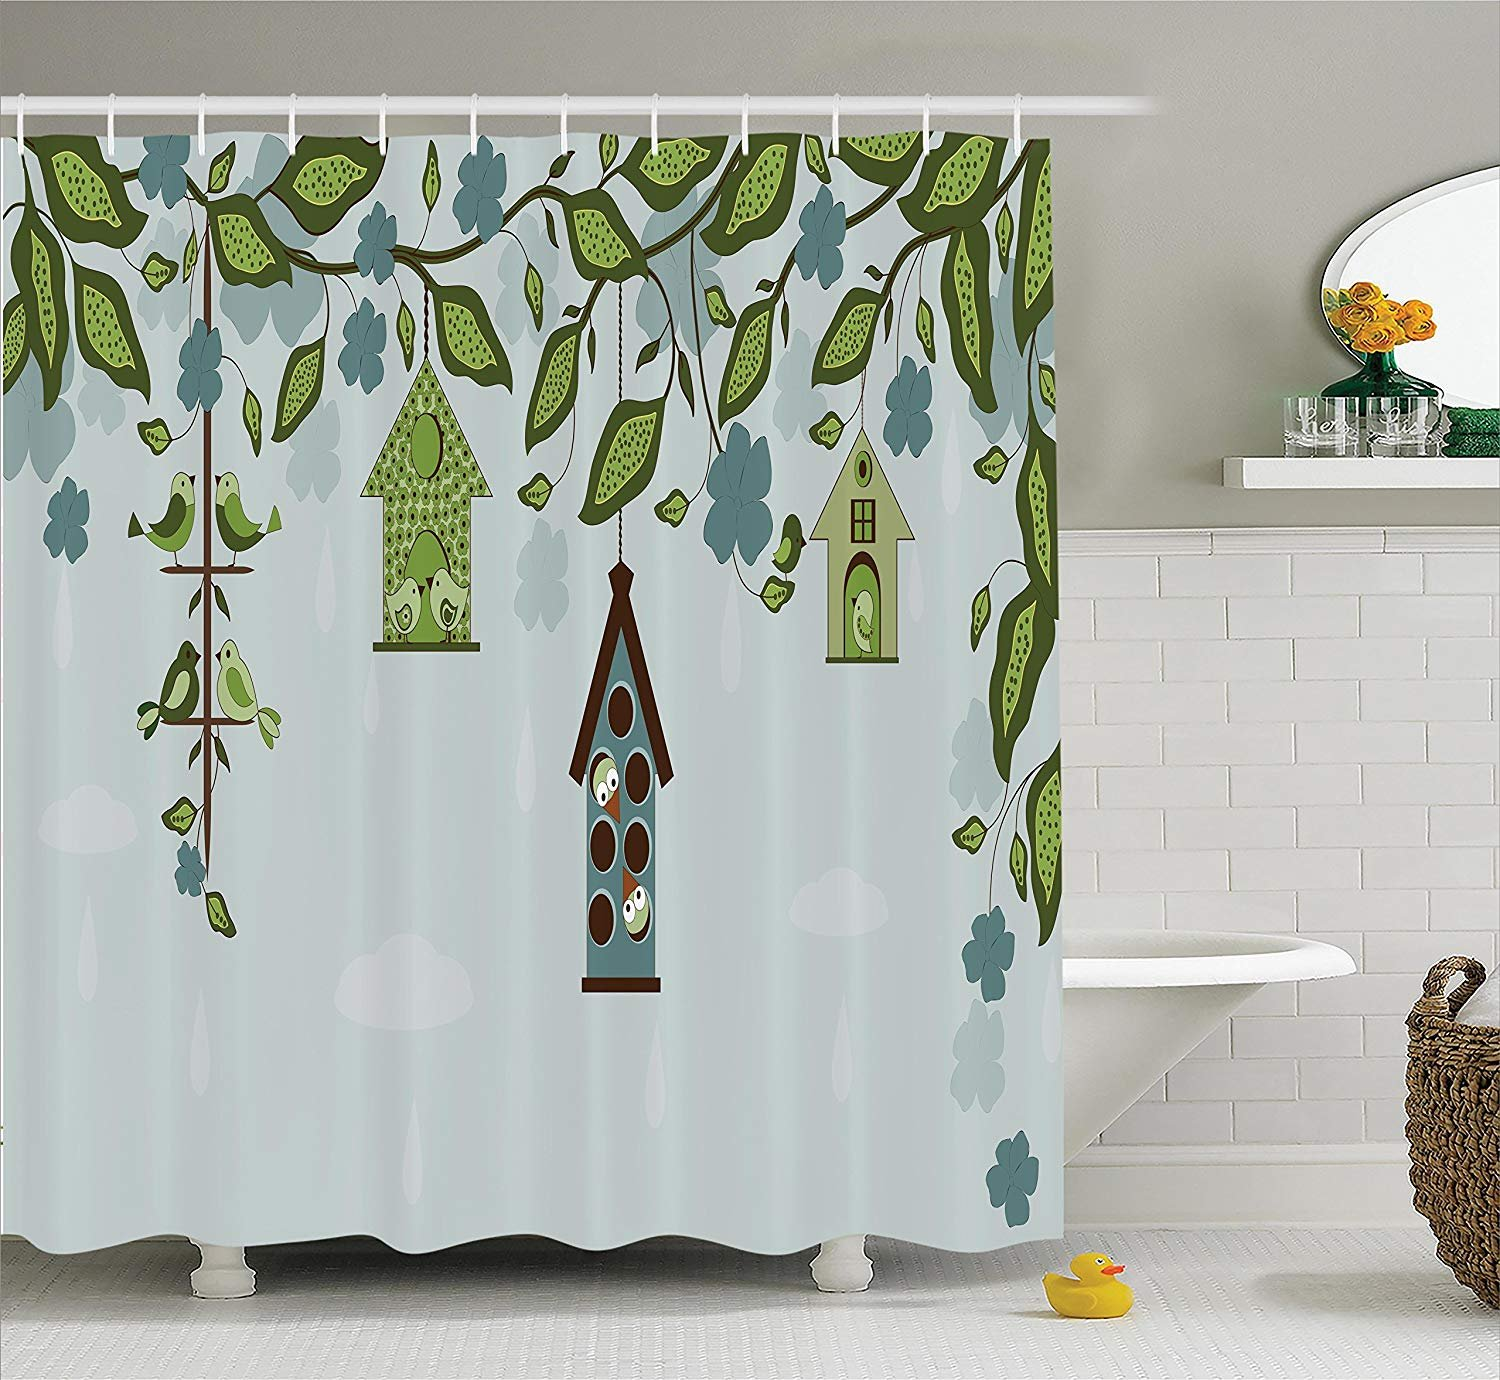 Polyester Fabric Bathroom Shower Curtain Set with Hooks Green Blue Birds Sitting in Cages Hanged on Elegant Floral Tree Branches Peace Blossom Decor Ambesonne Flying Birds Decor Collection